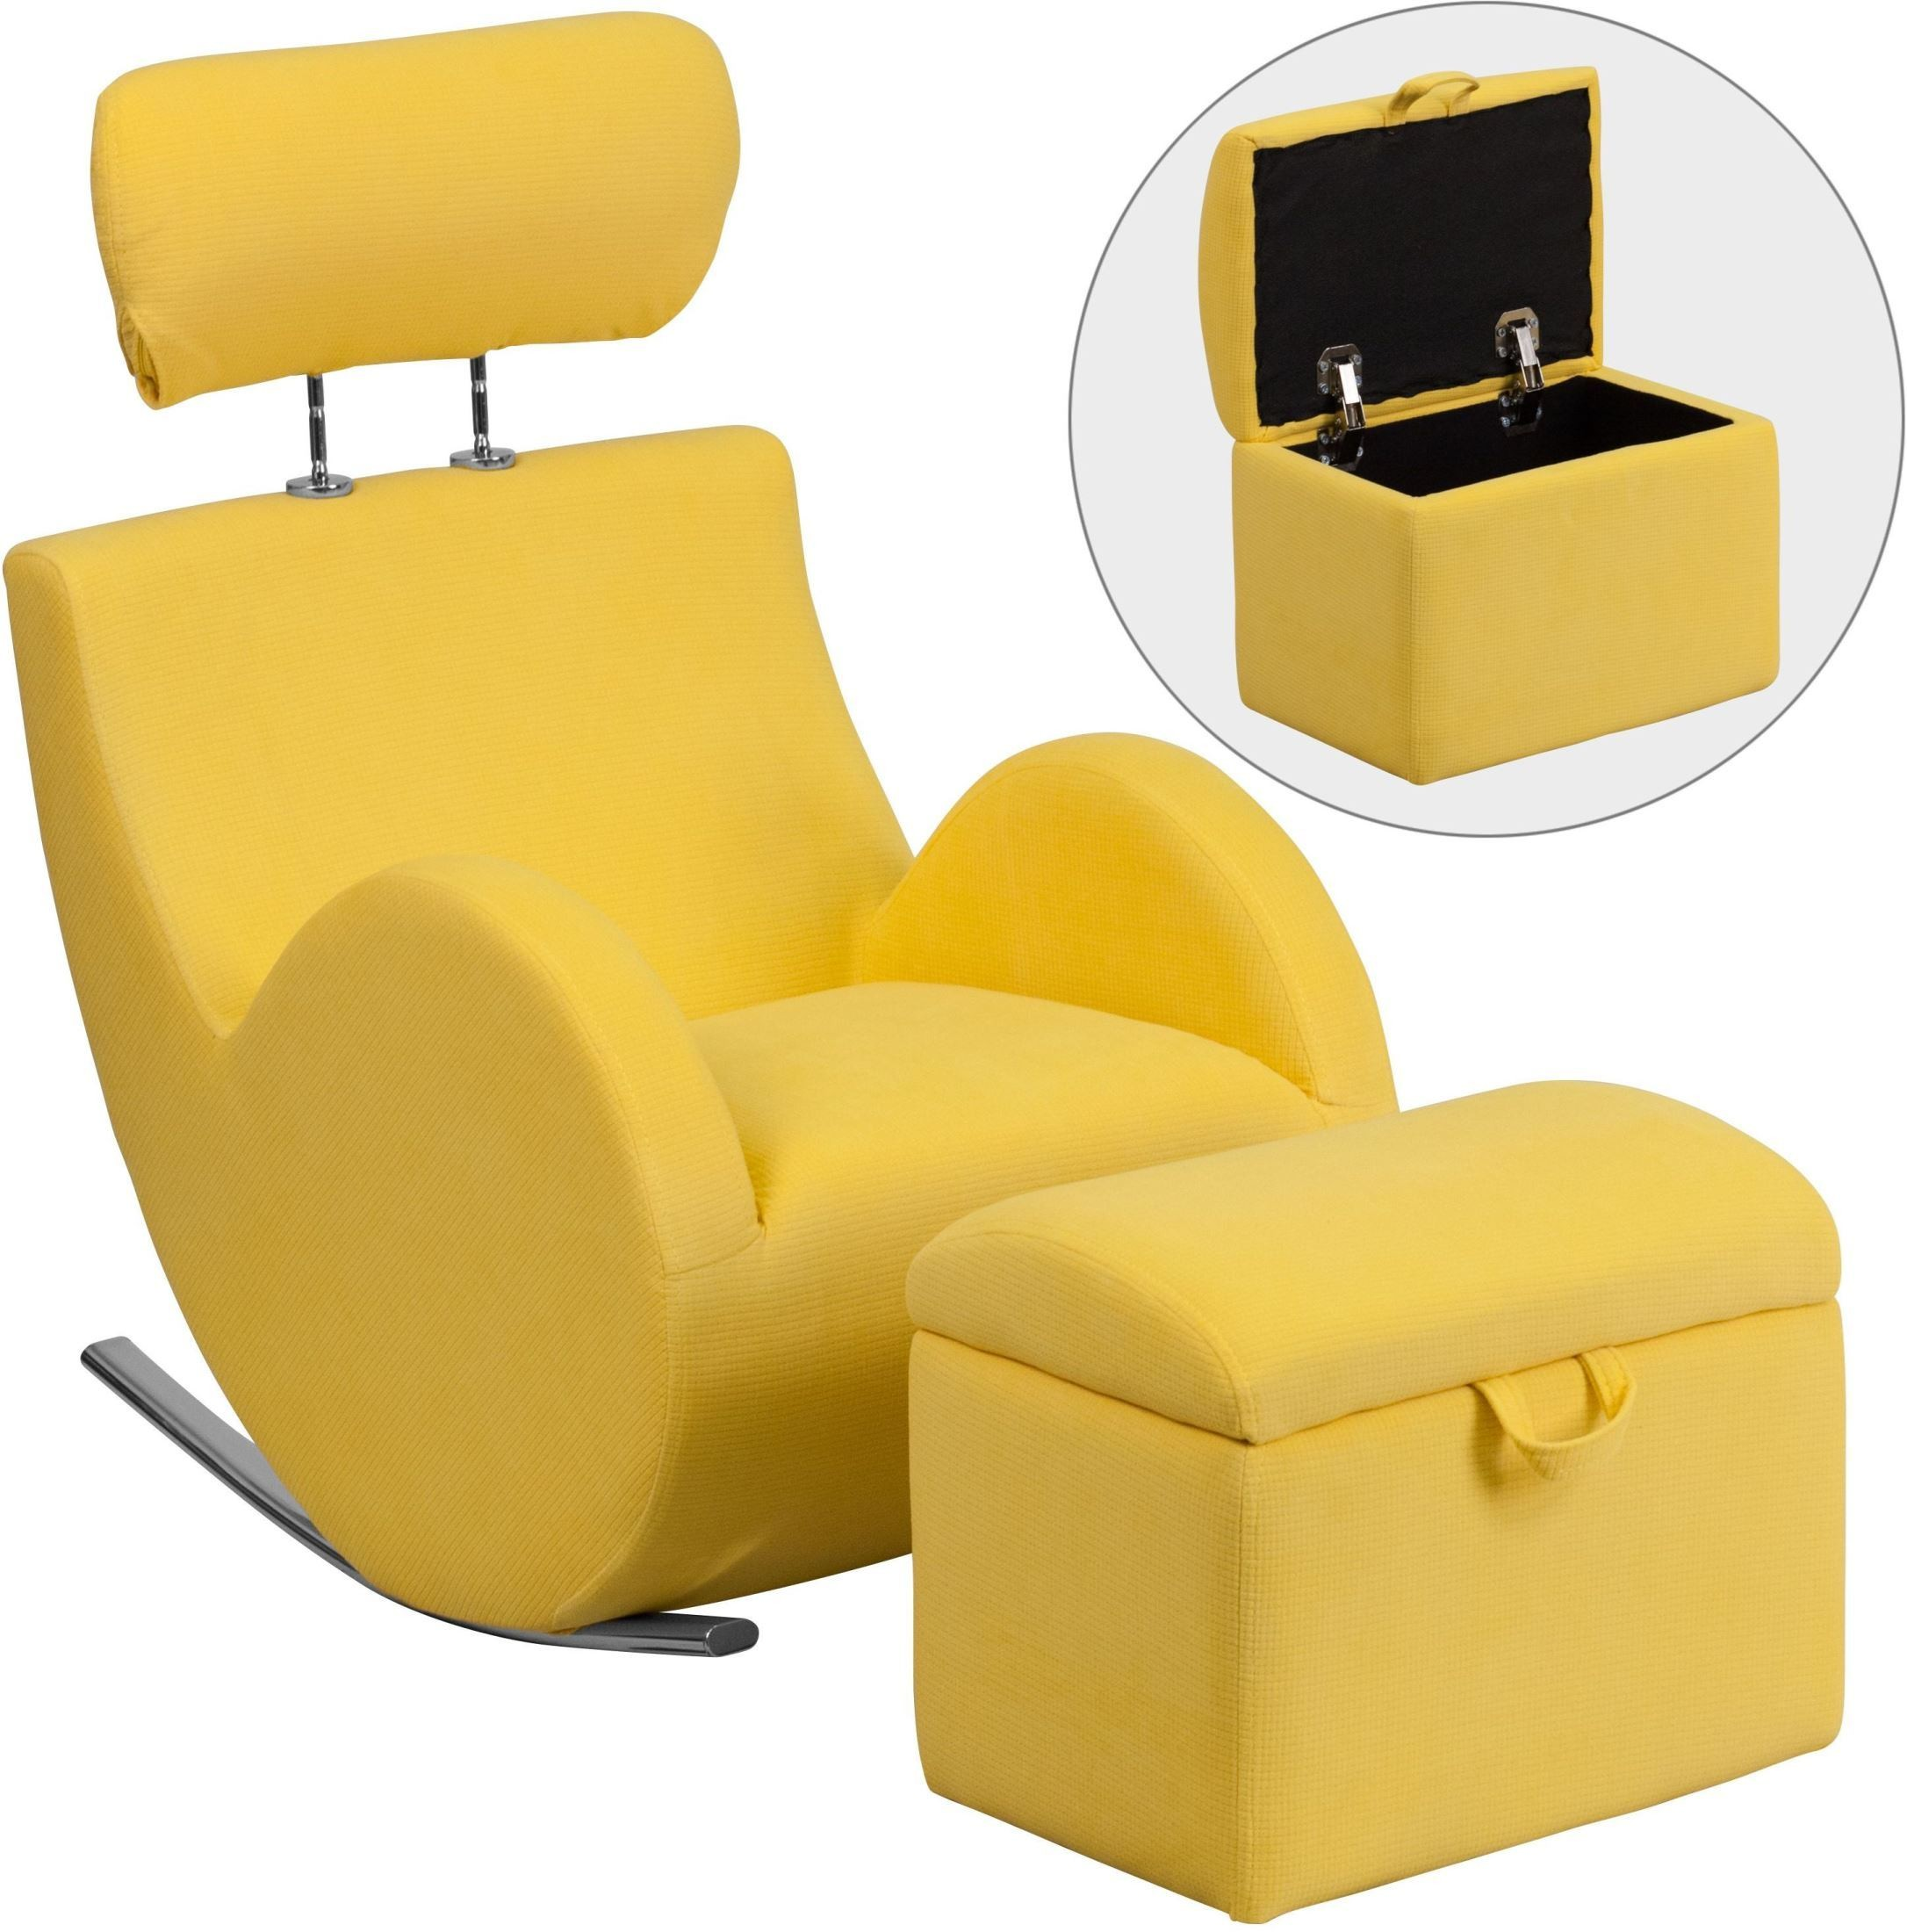 yellow rocking chair ergonomic desk and computer setup hercules fabric with storage ottoman